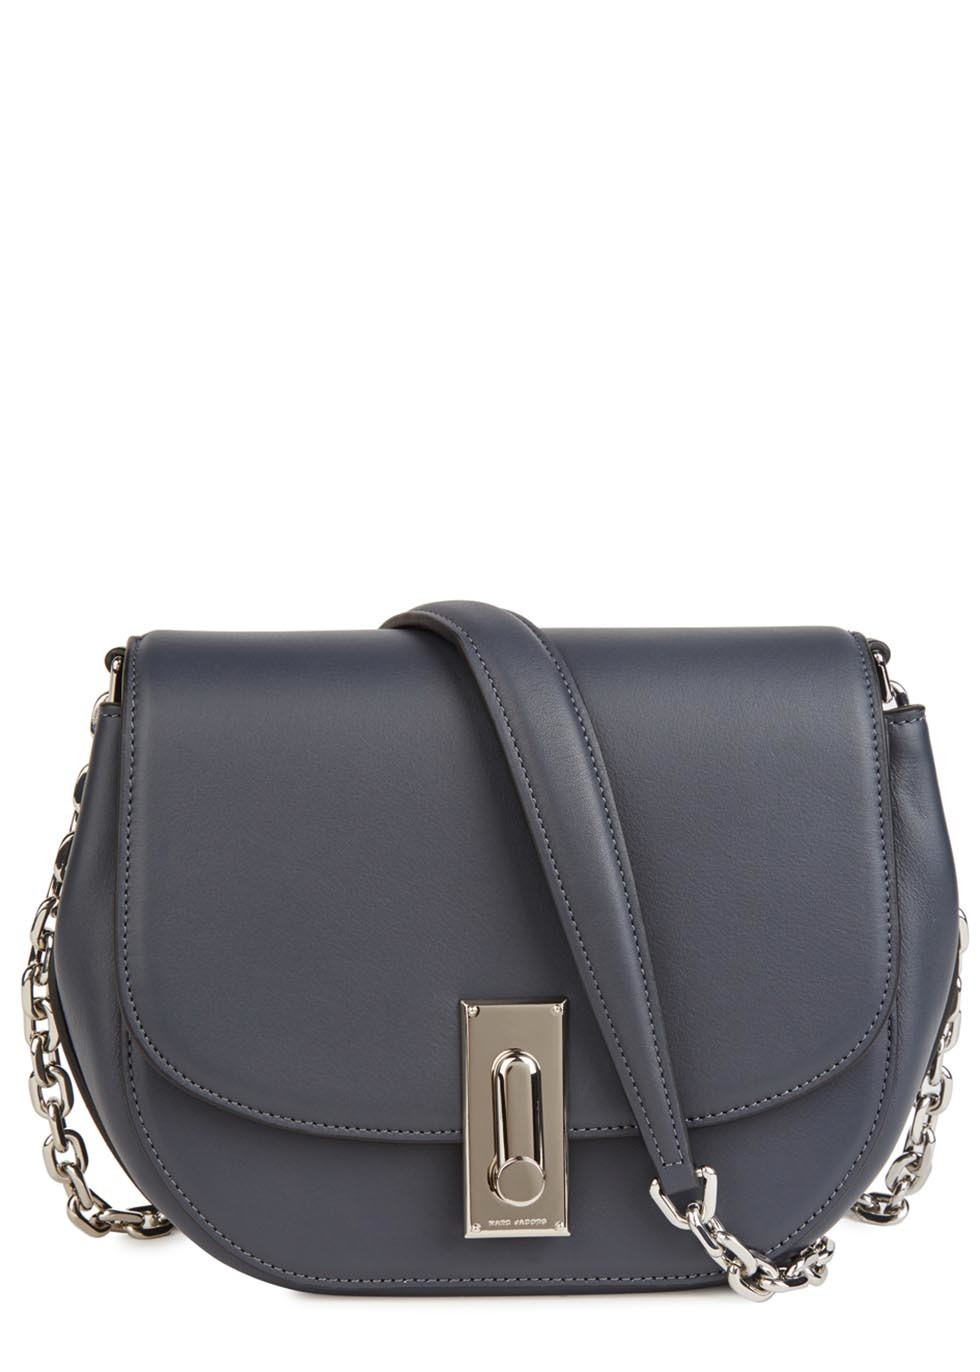 West End Jane Grey Leather Shoulder Bag - secondary colour: silver; predominant colour: mid grey; occasions: casual, creative work; type of pattern: standard; style: saddle; length: across body/long; size: standard; material: leather; pattern: plain; finish: plain; season: s/s 2016; wardrobe: basic